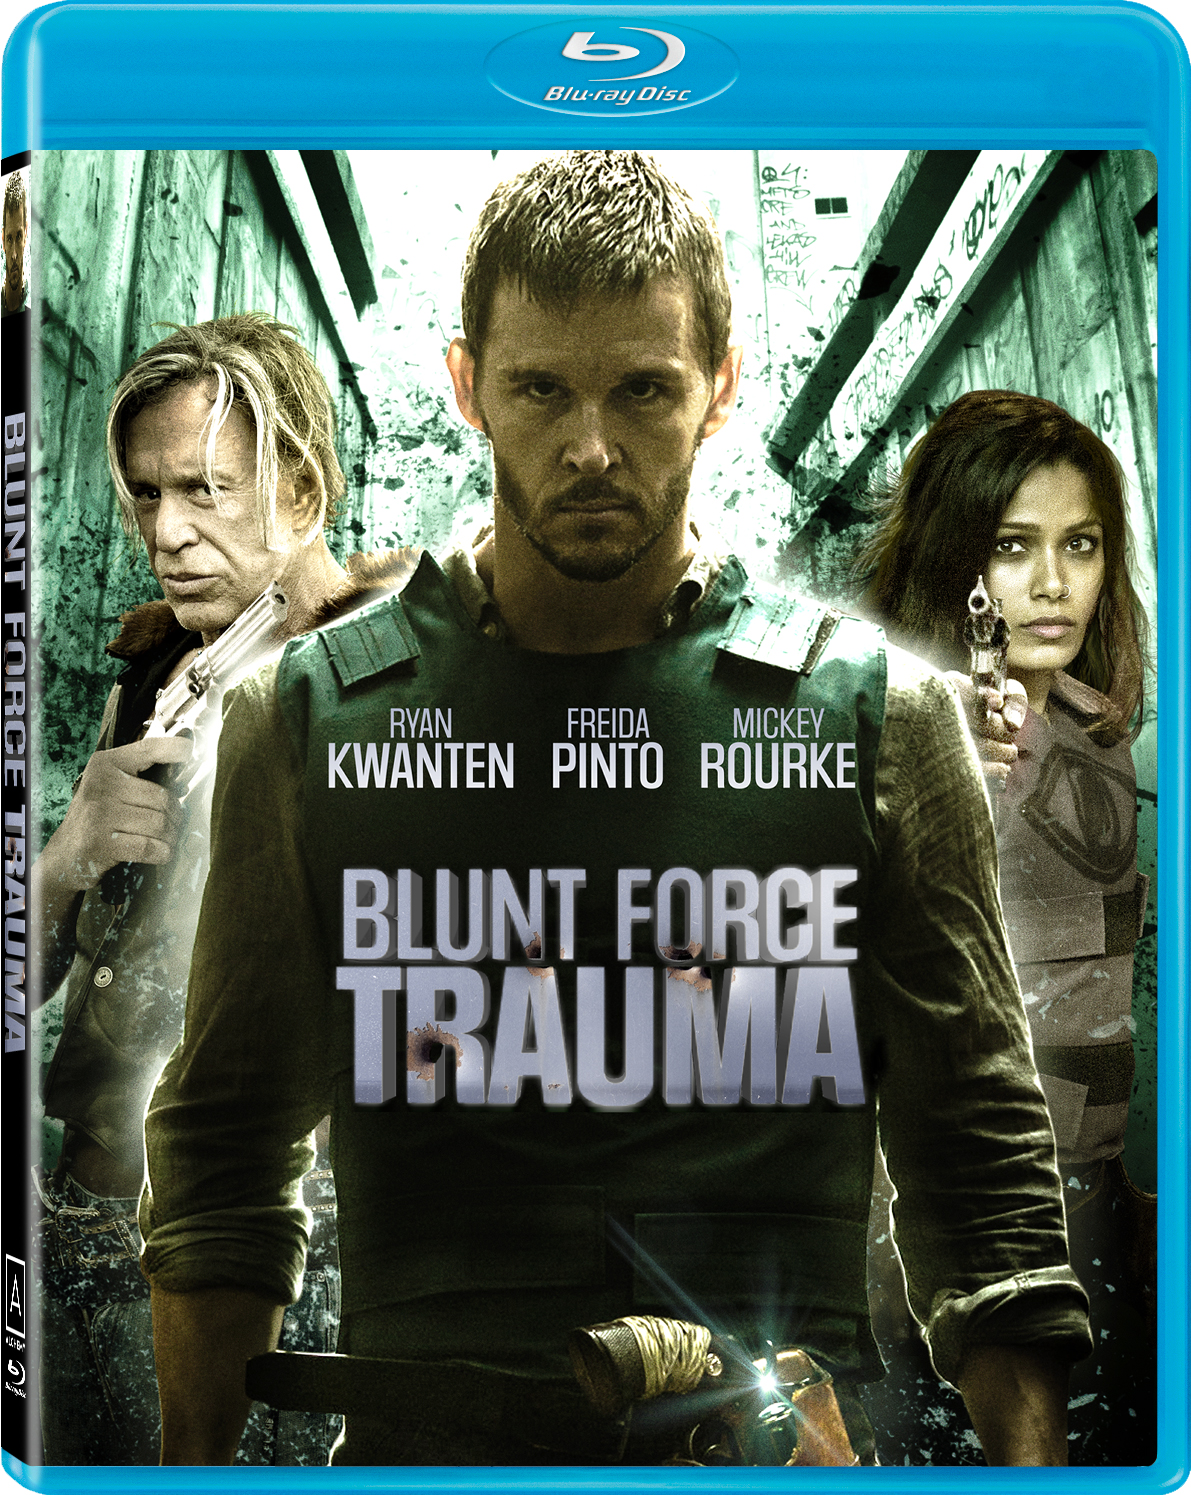 BLUNT FORCE TRAUMA DVD Review